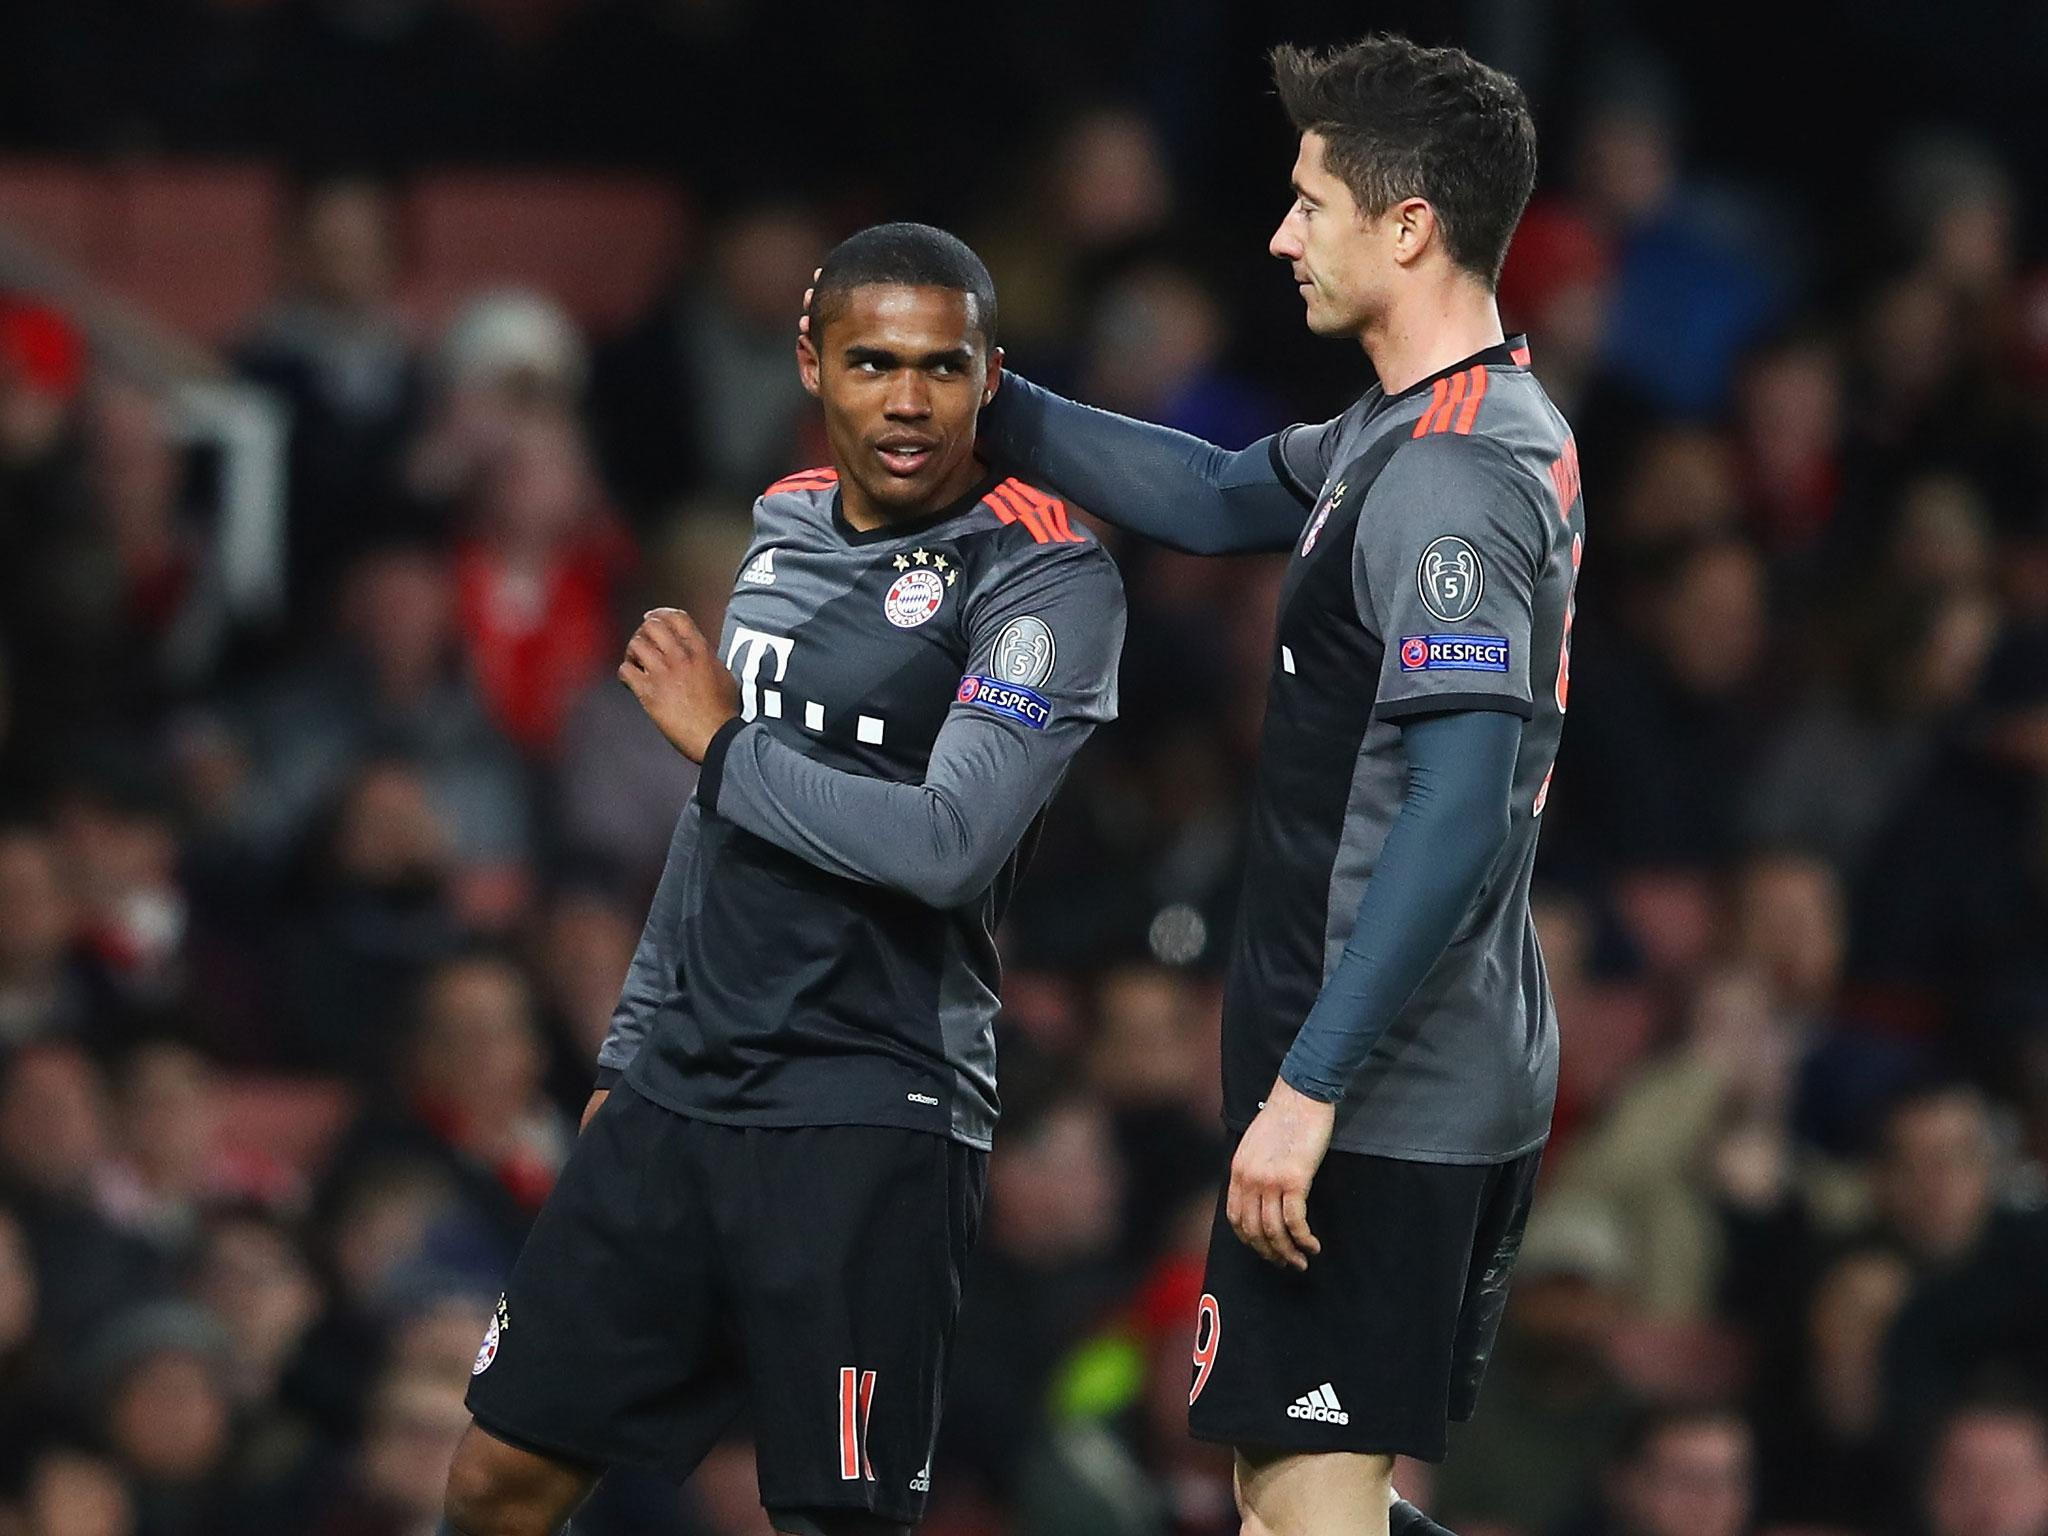 Douglas Costa reiterates his unhappiness at Bayern Munich and